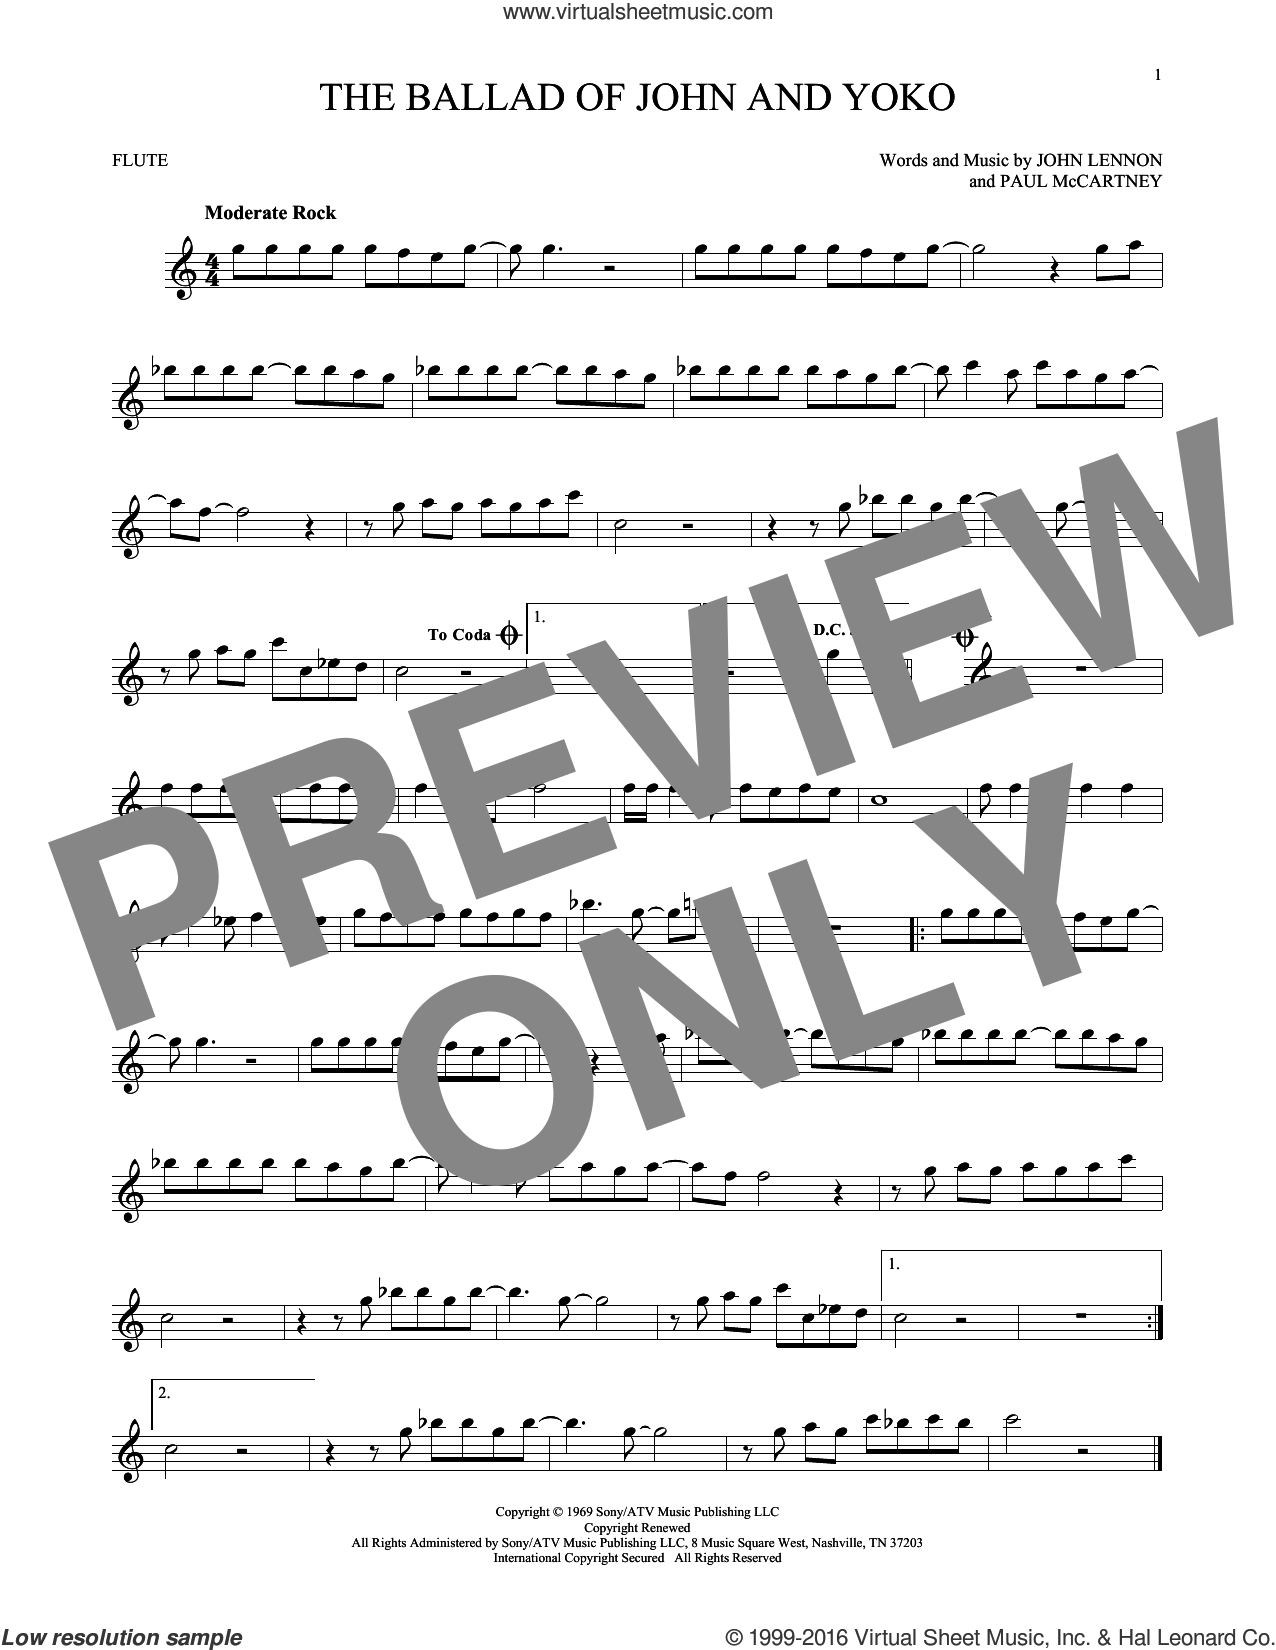 The Ballad Of John And Yoko sheet music for flute solo by The Beatles, John Lennon and Paul McCartney, intermediate skill level